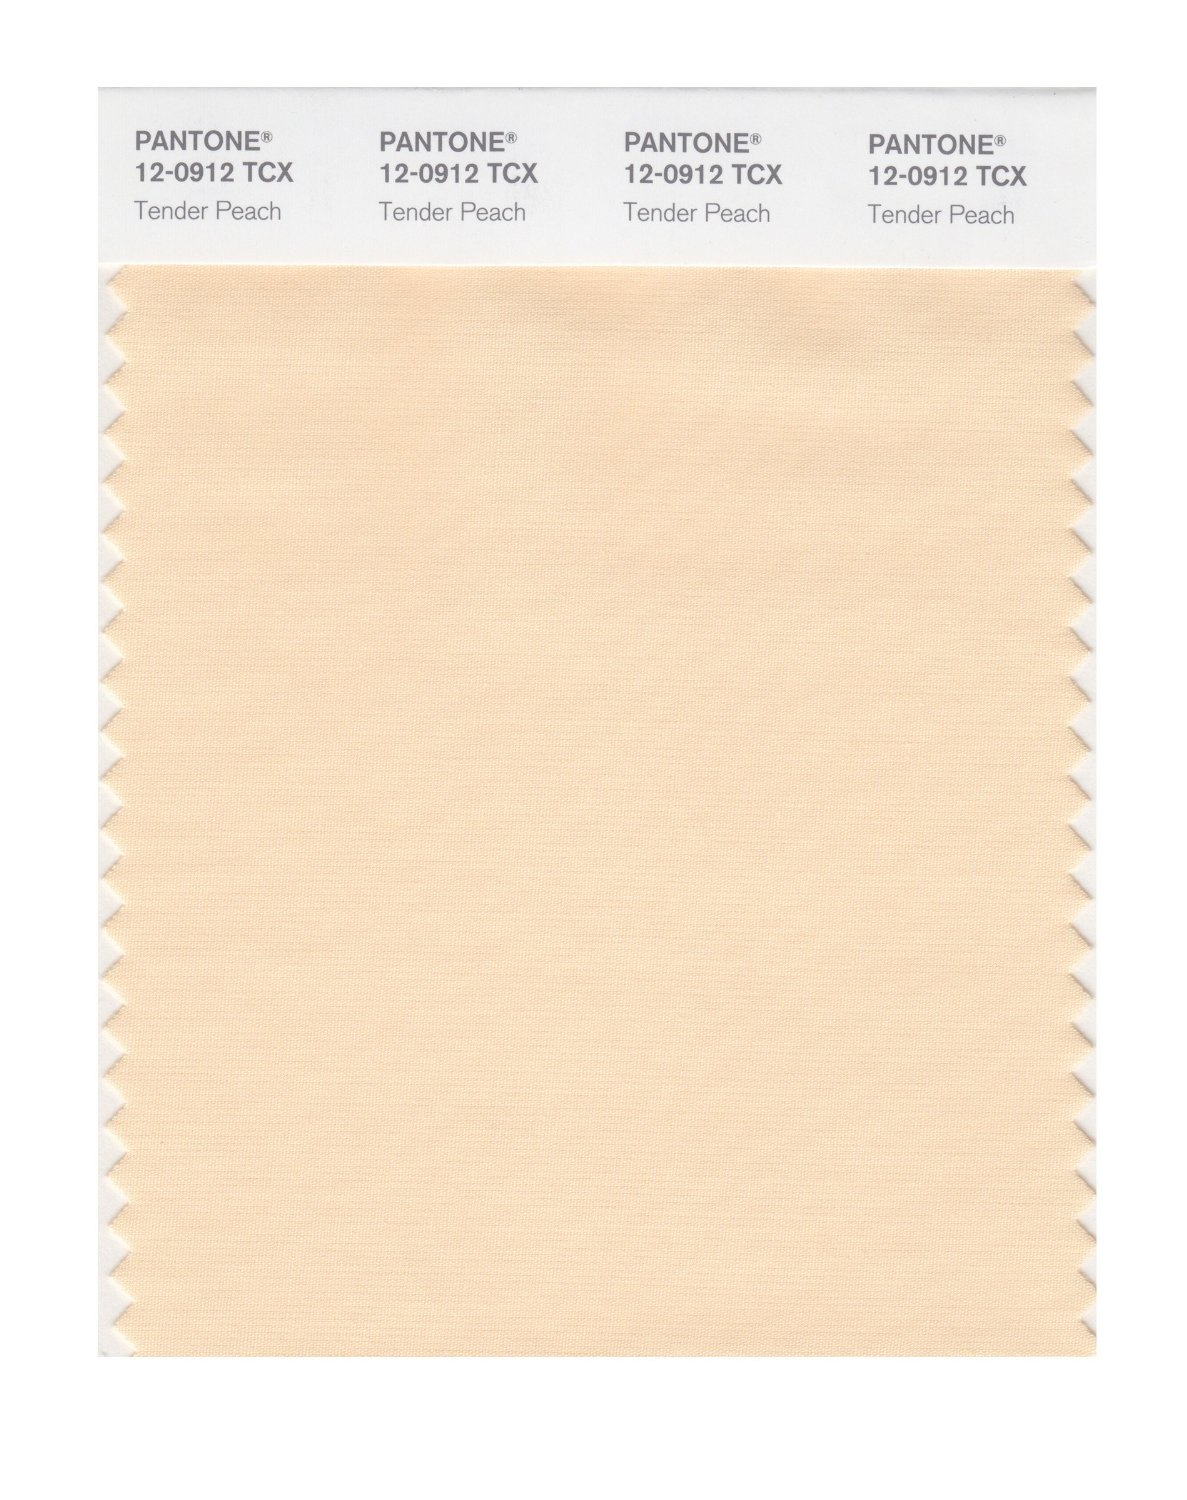 Pantone Smart Swatch 12-0912 Tender Peach